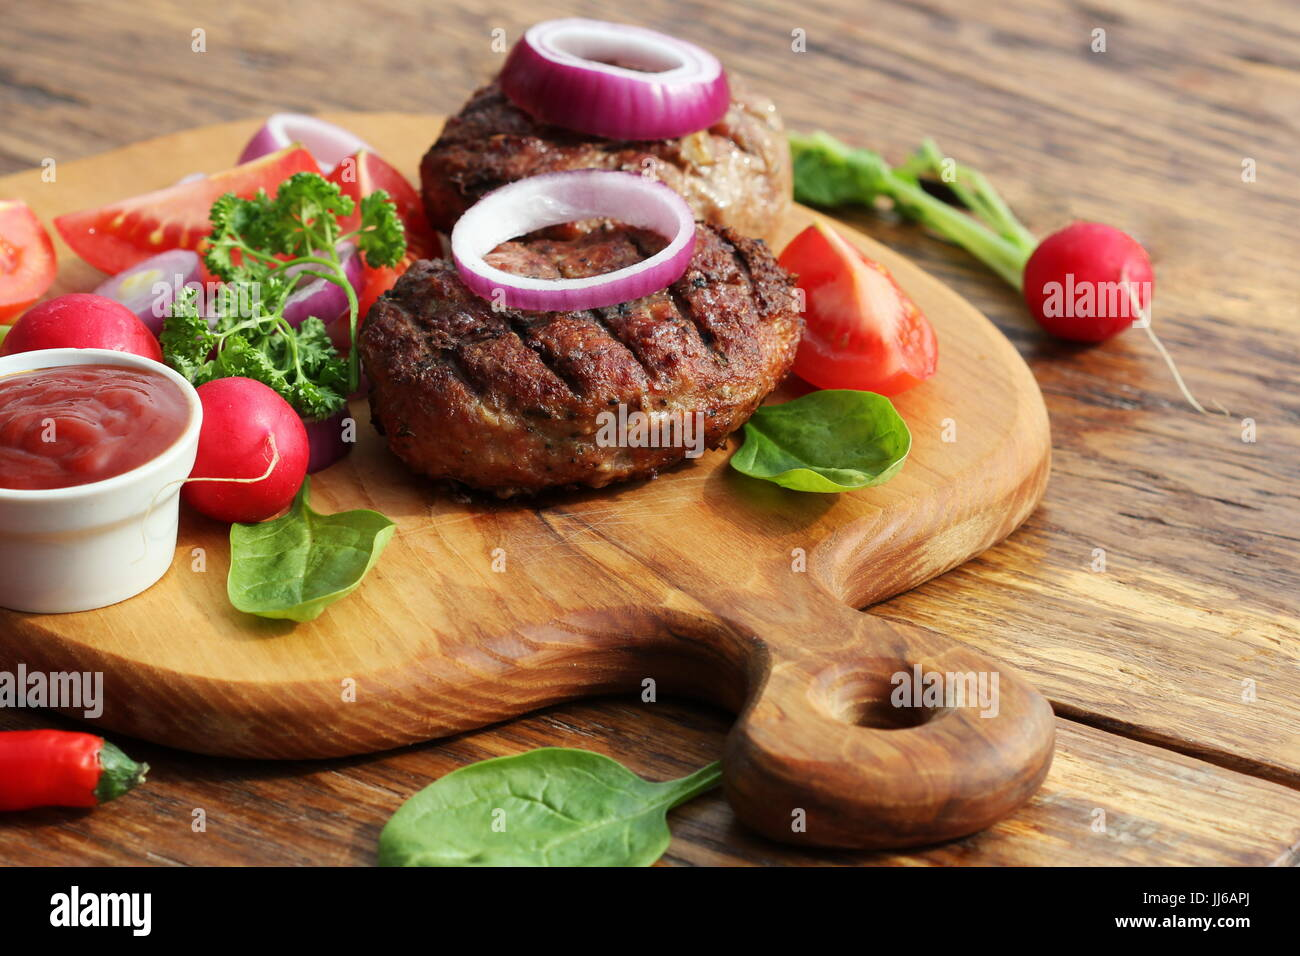 Homemade beef burger with onion on cutting board - Stock Image